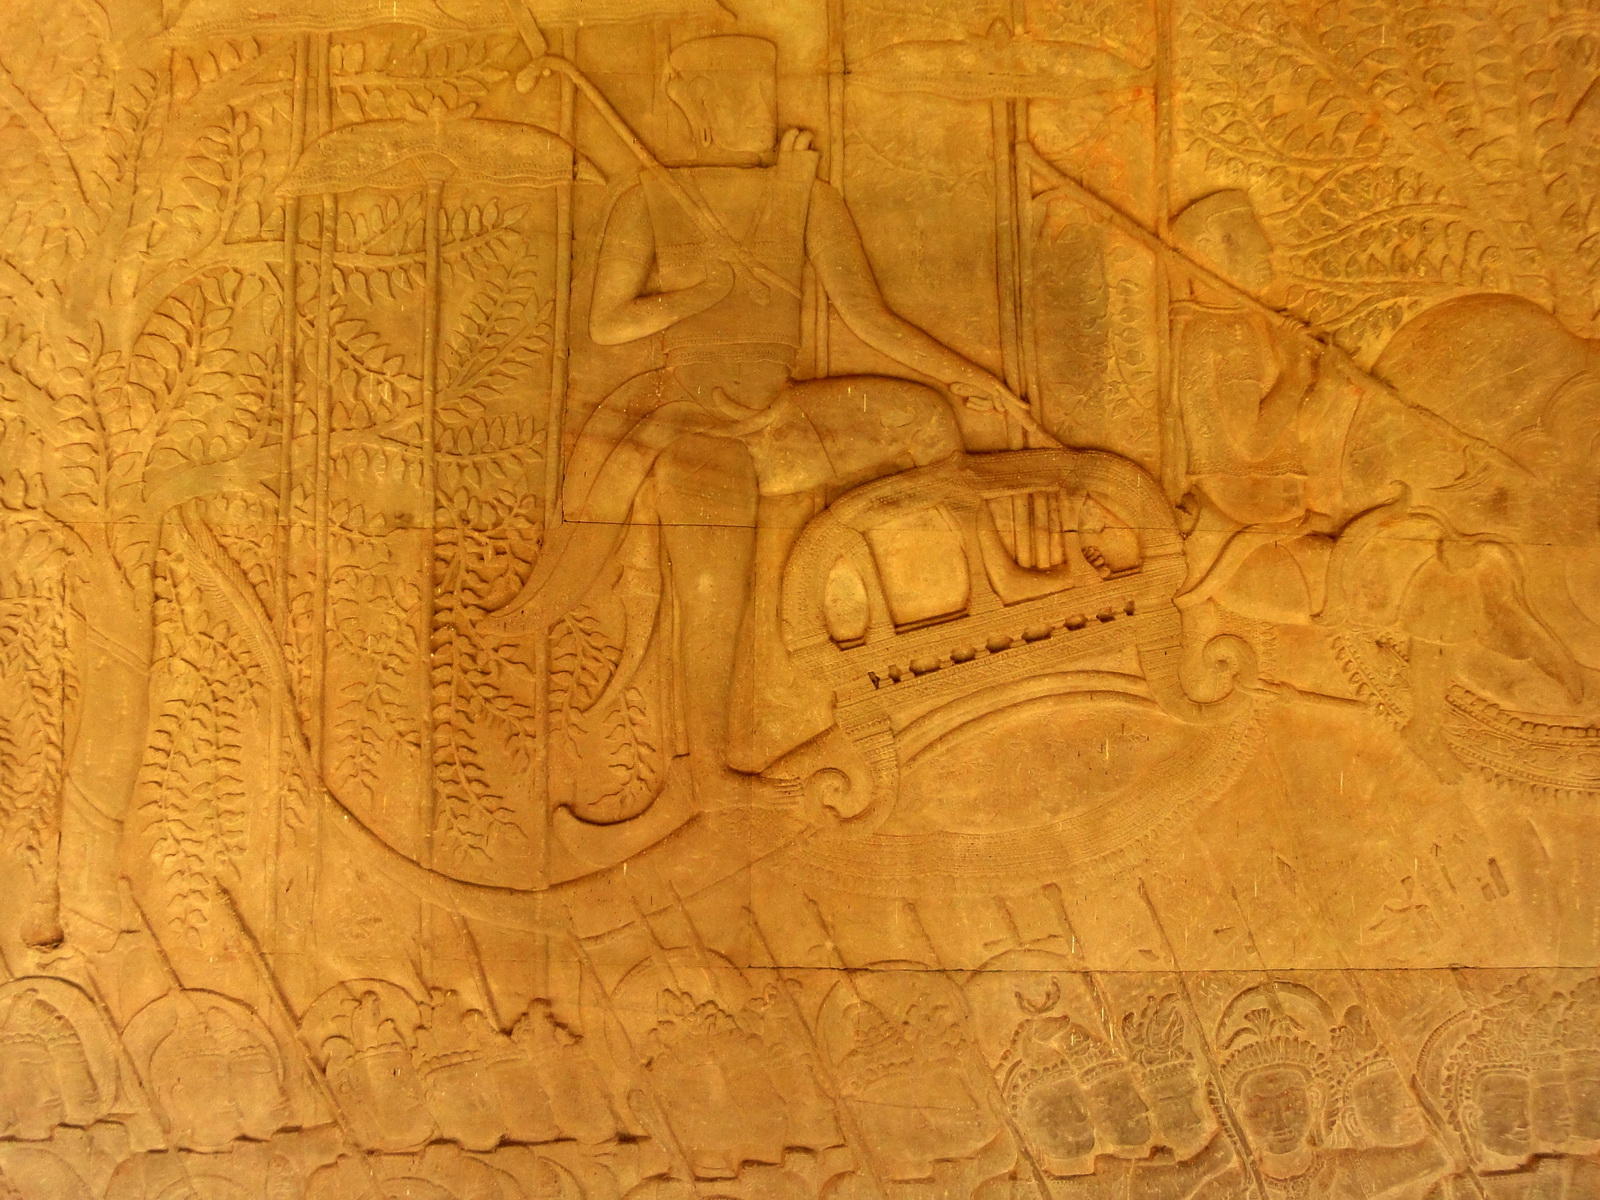 Angkor Wat Bas relief S Gallery W Wing Historic Procession 032